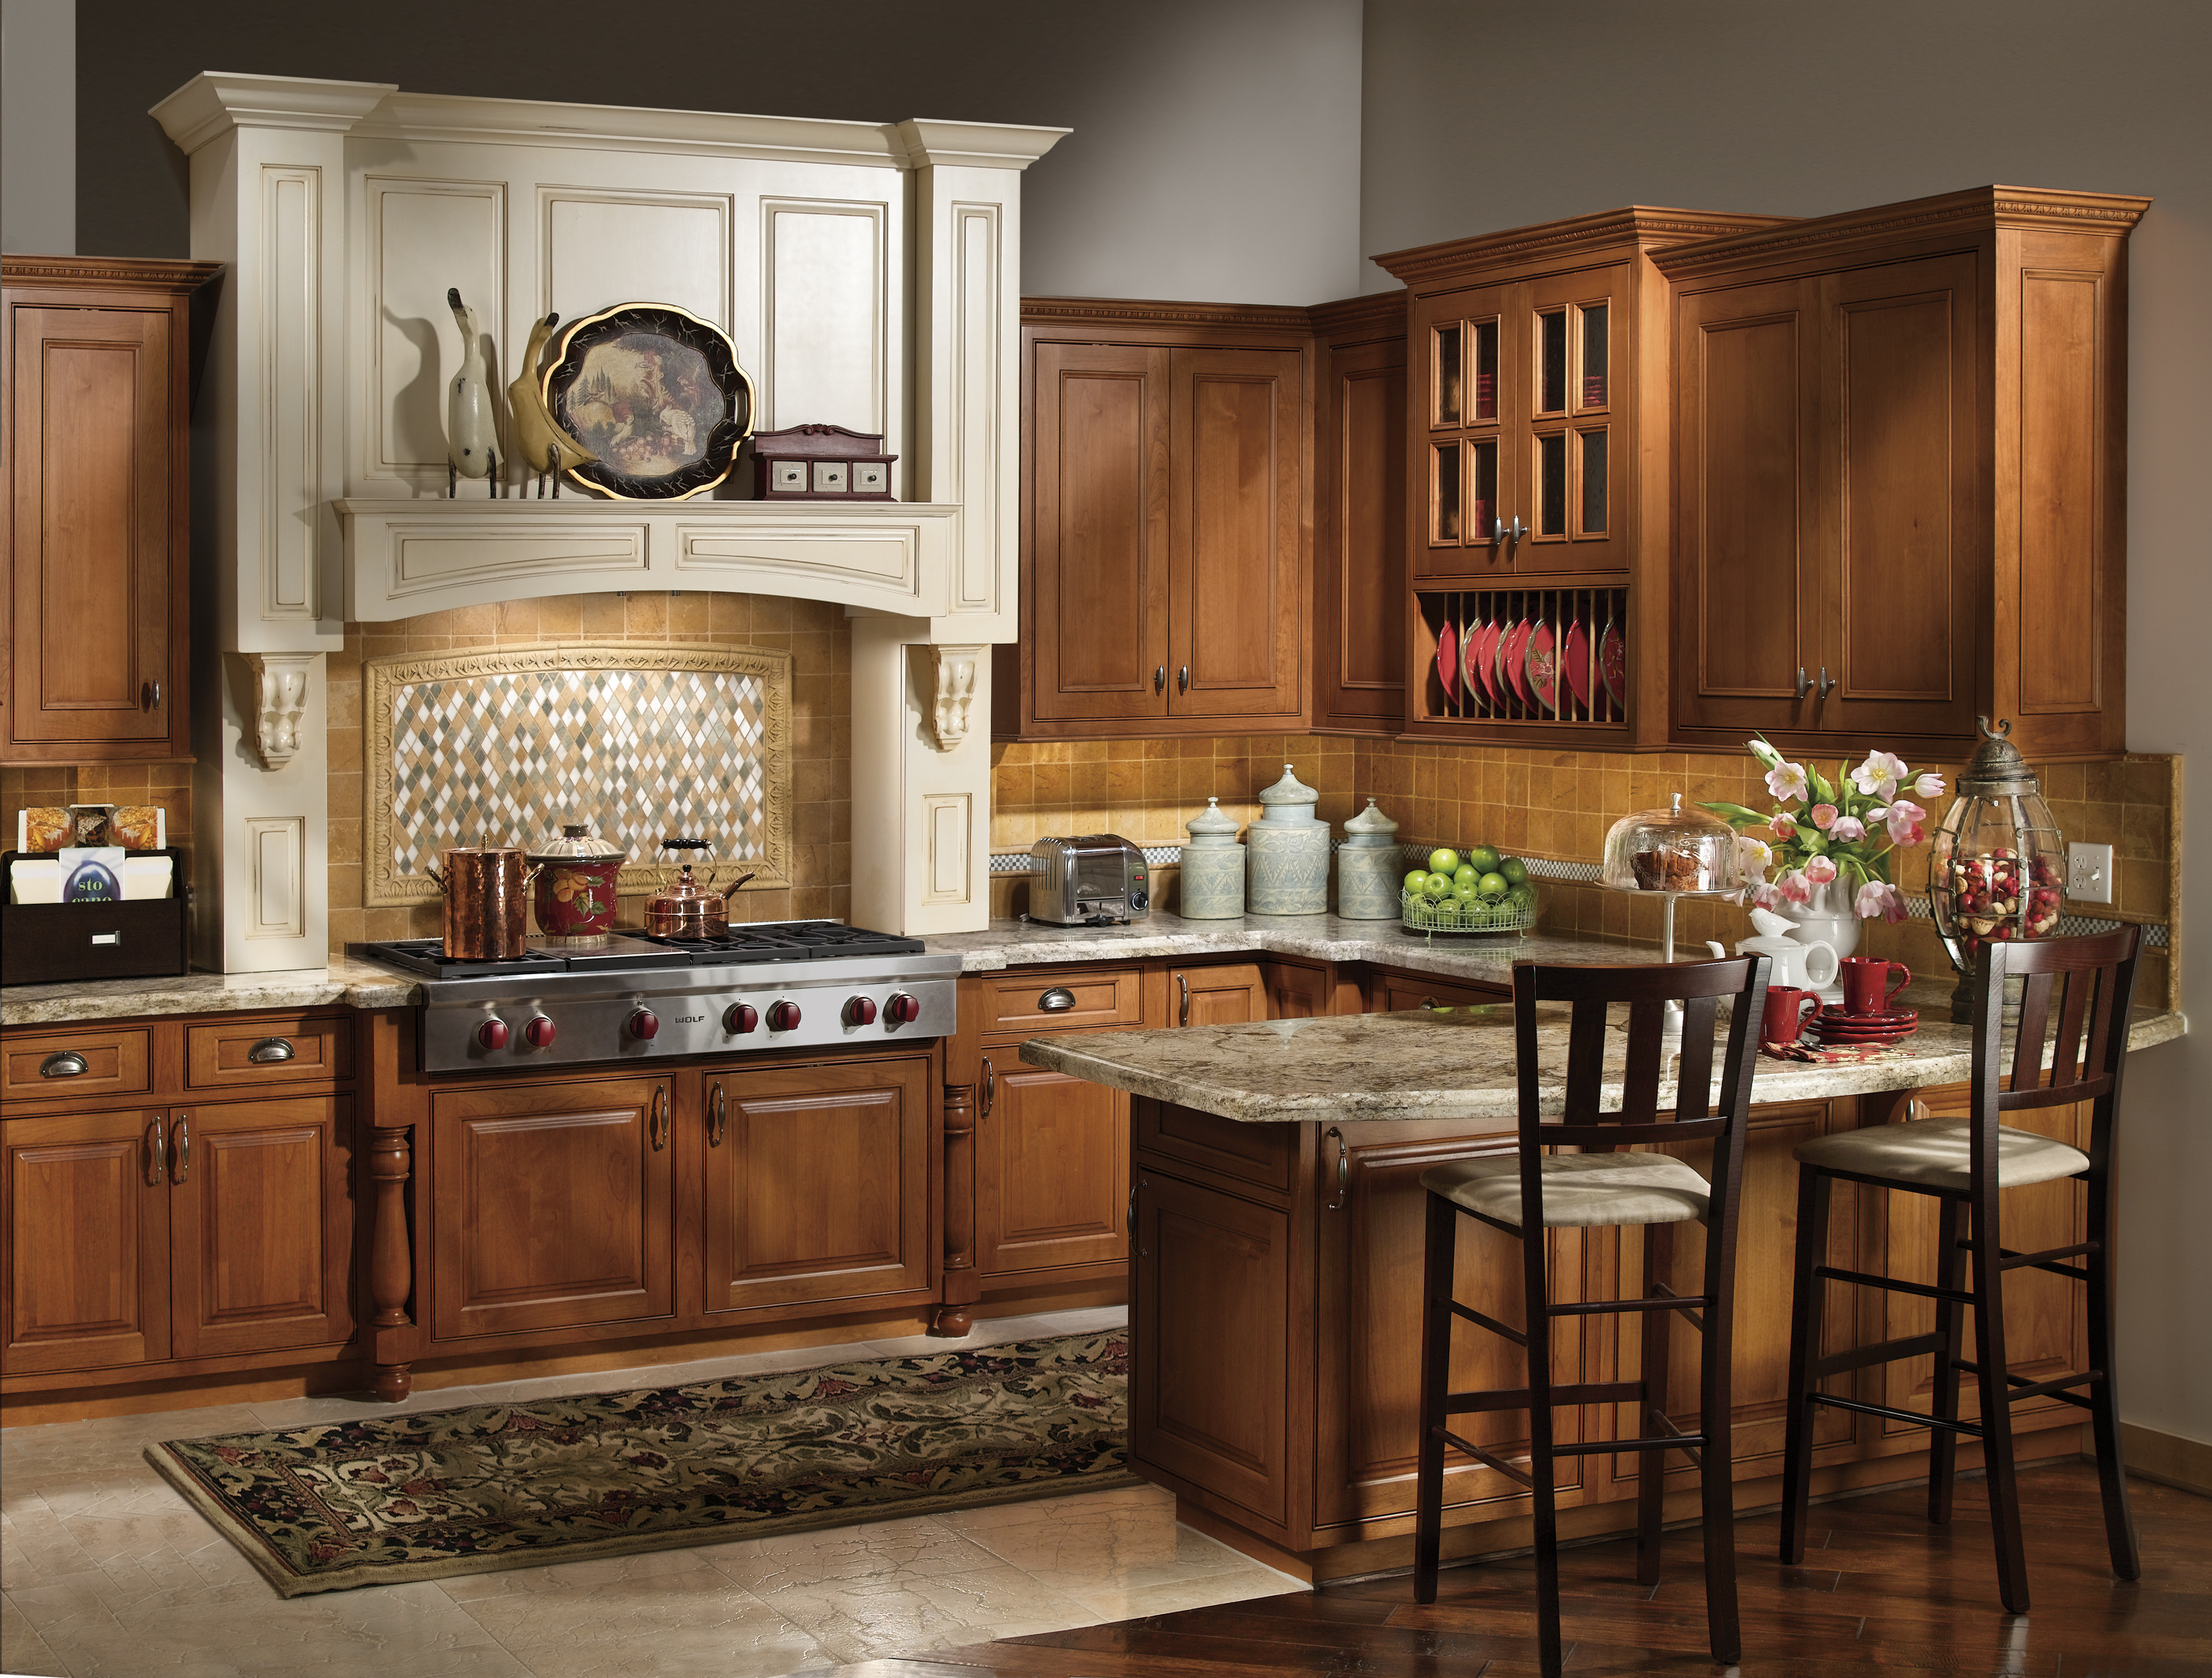 American Country Style Cabinetry